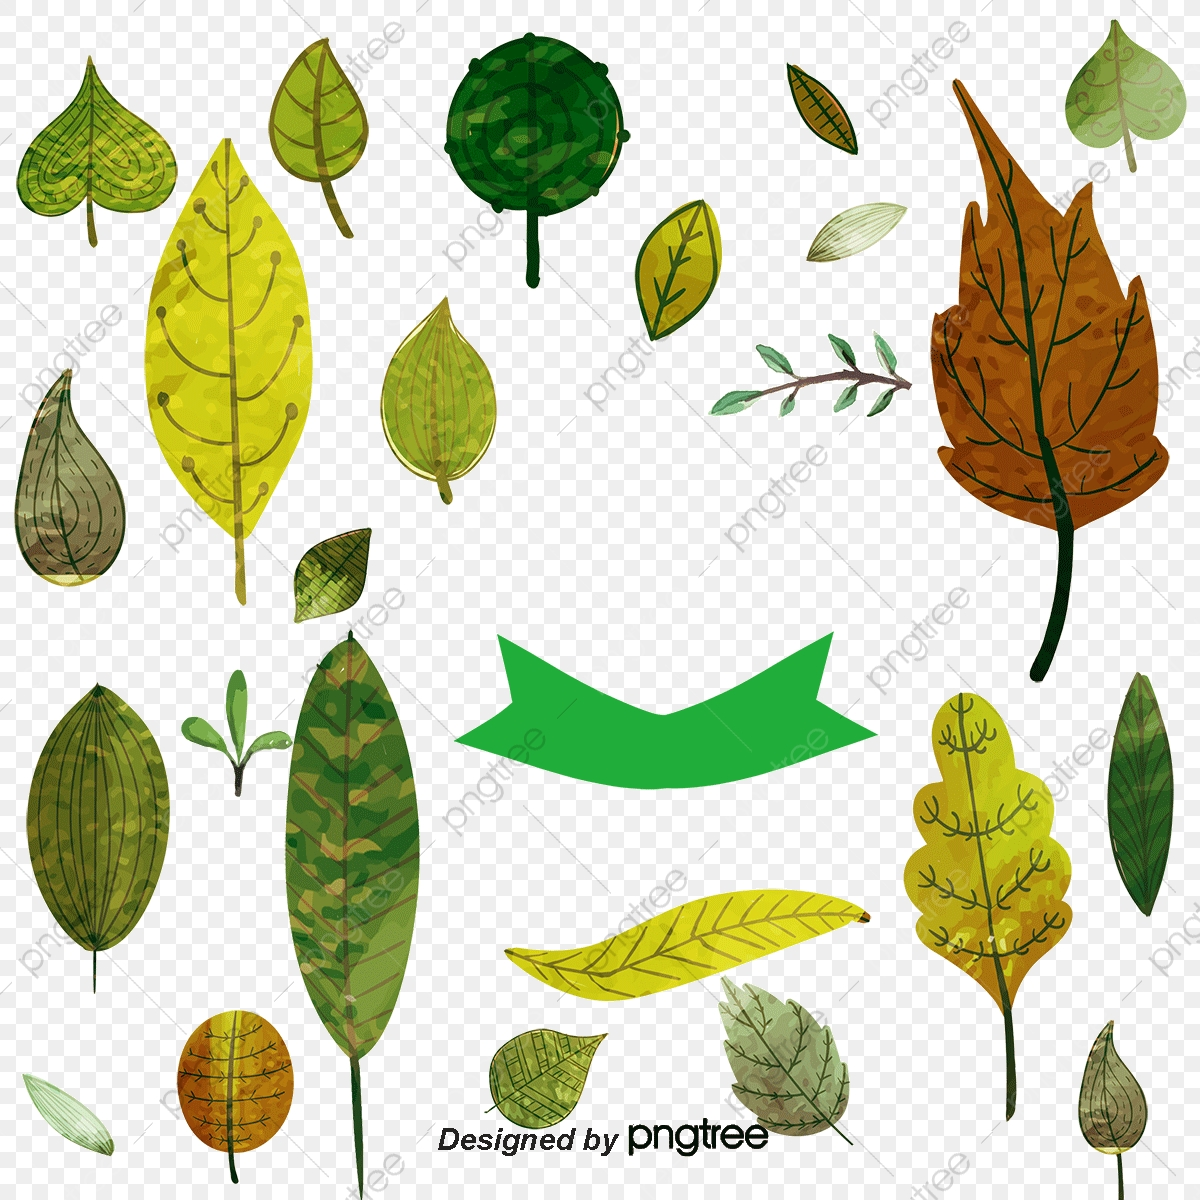 commercial use resource  upgrade to premium plan and get license  authorization upgradenow � vector diagram leaf